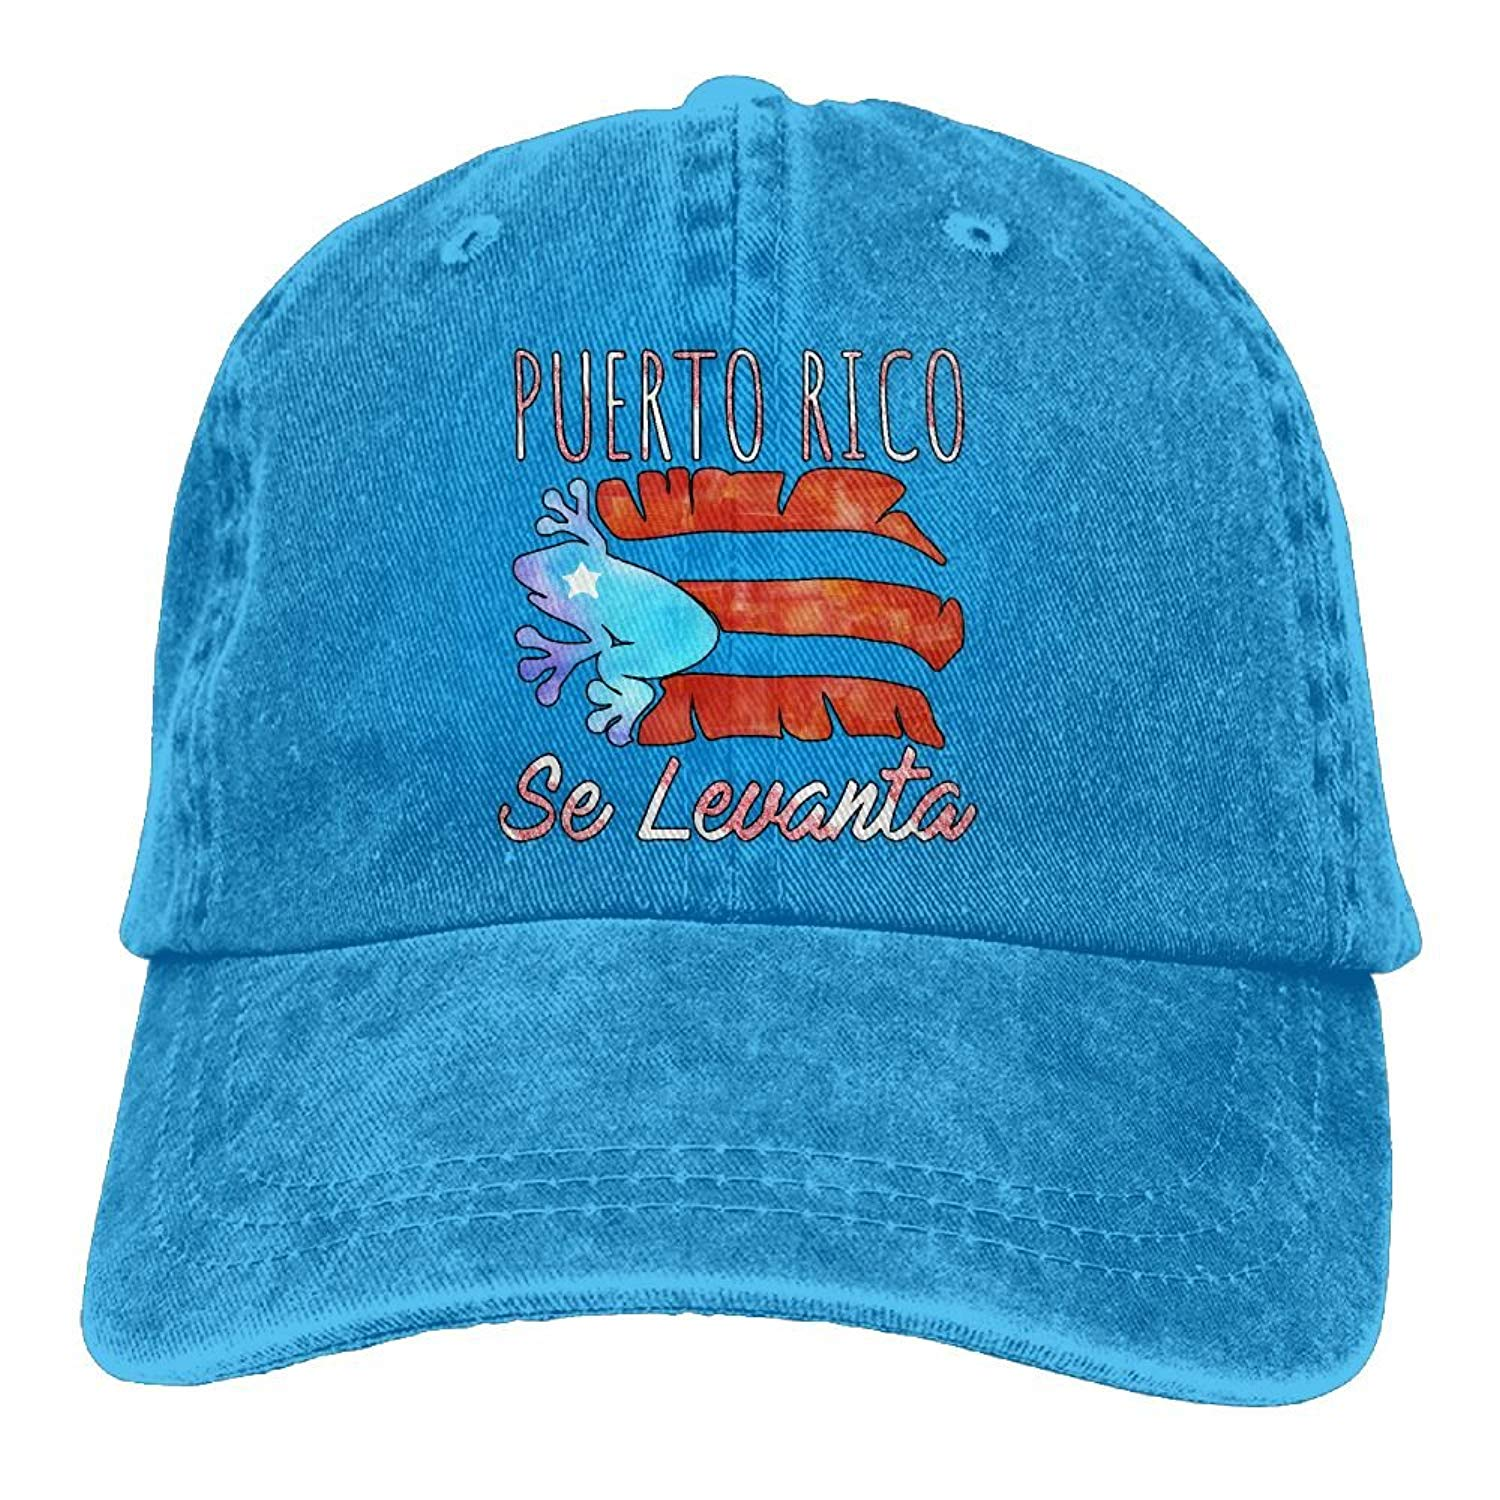 448567b4f113e Flag Puerto Rico Island Blue Adjustable Strapback Cap Dad Hat 10.0. Puerto  Rico Se Levanta Frog Coqui Boricua Pride Fashion Men   Women Adjustable  Cowboy ...